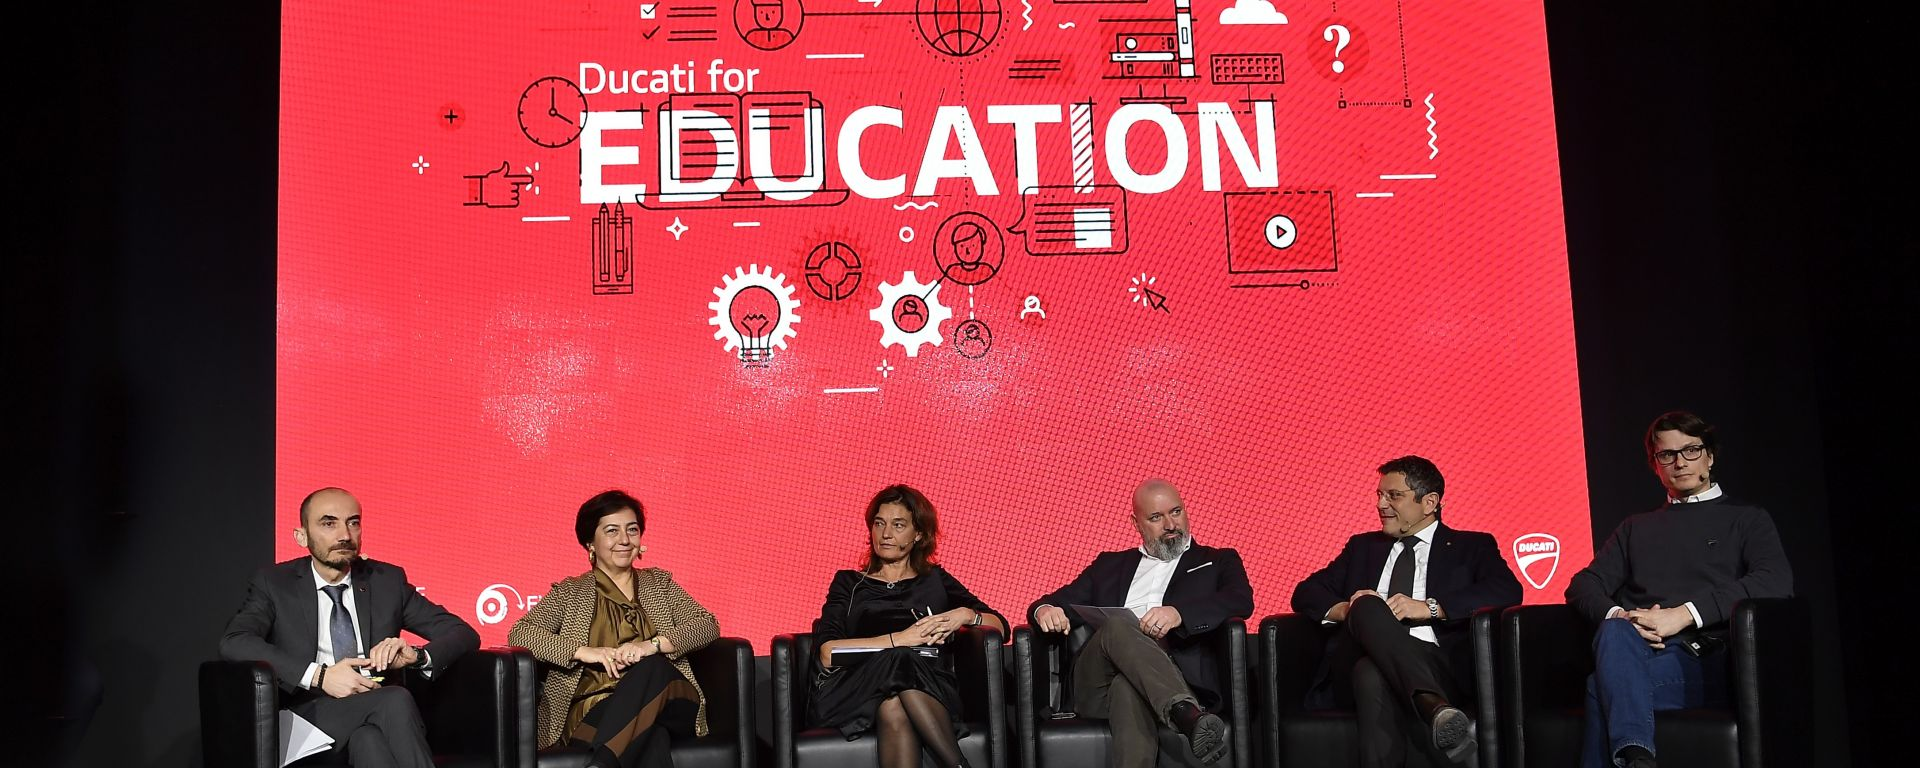 Ducati for Education 2019